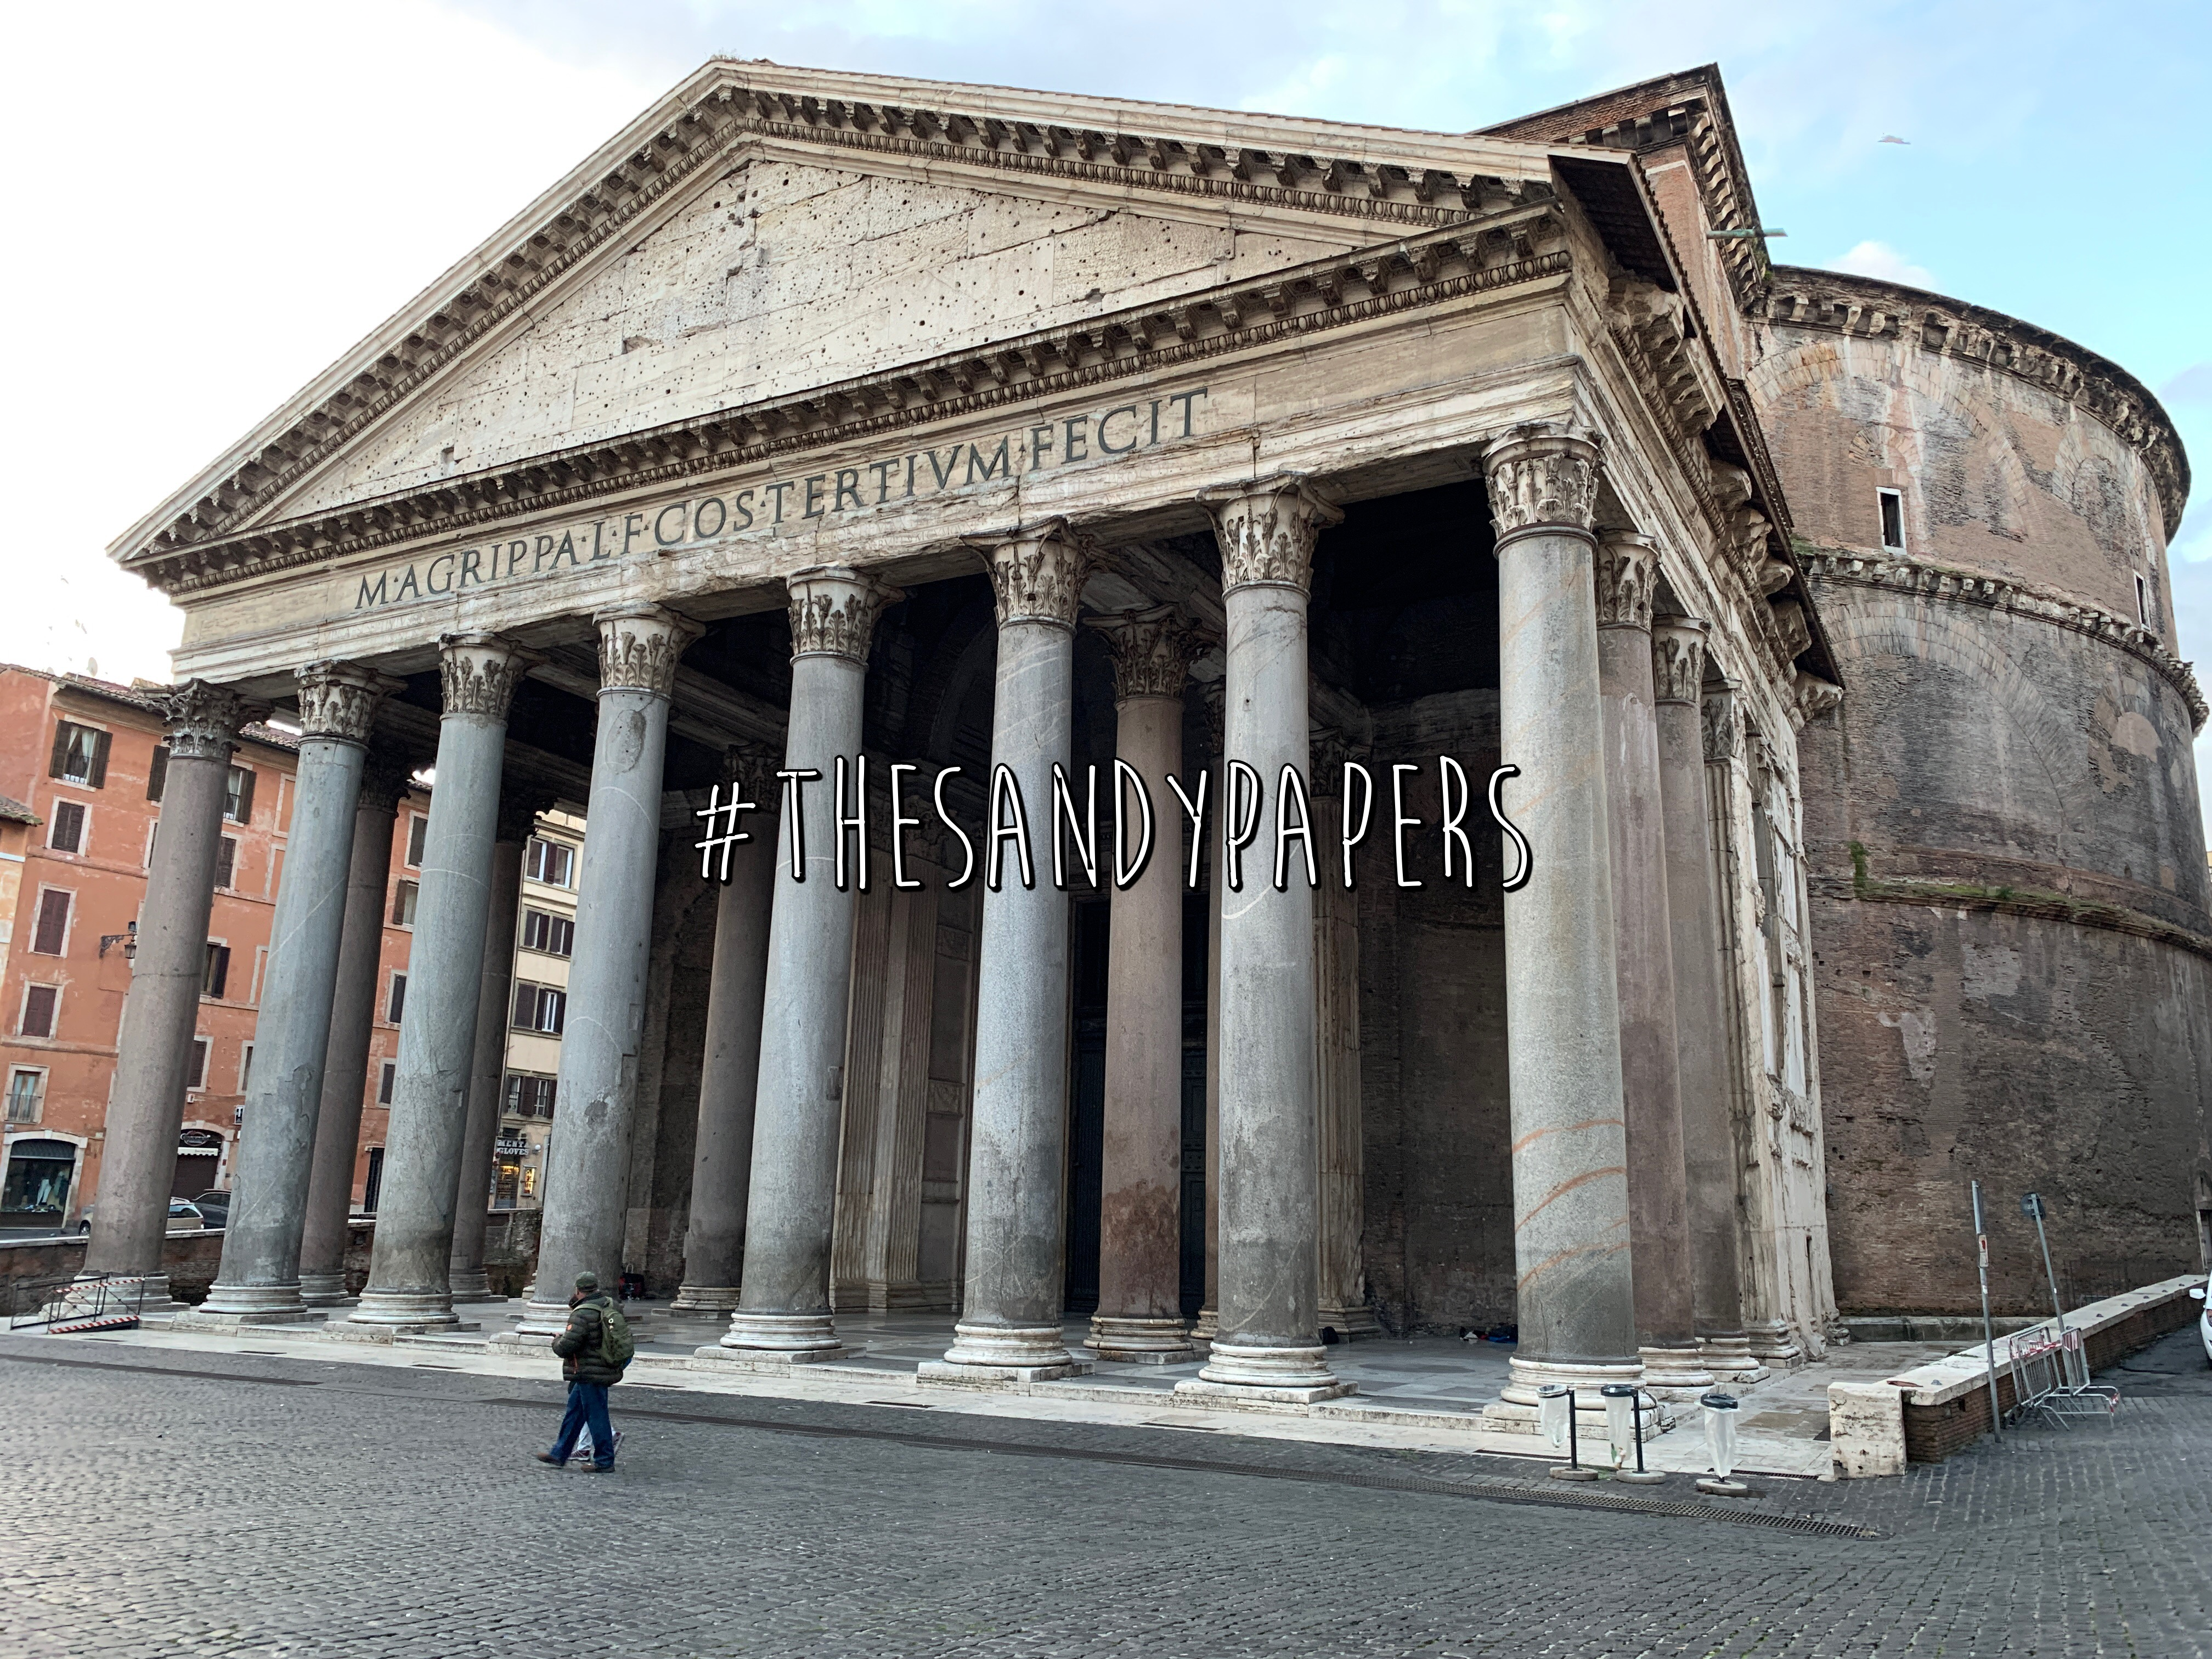 Exterior of the Pantheon as seen from the front.